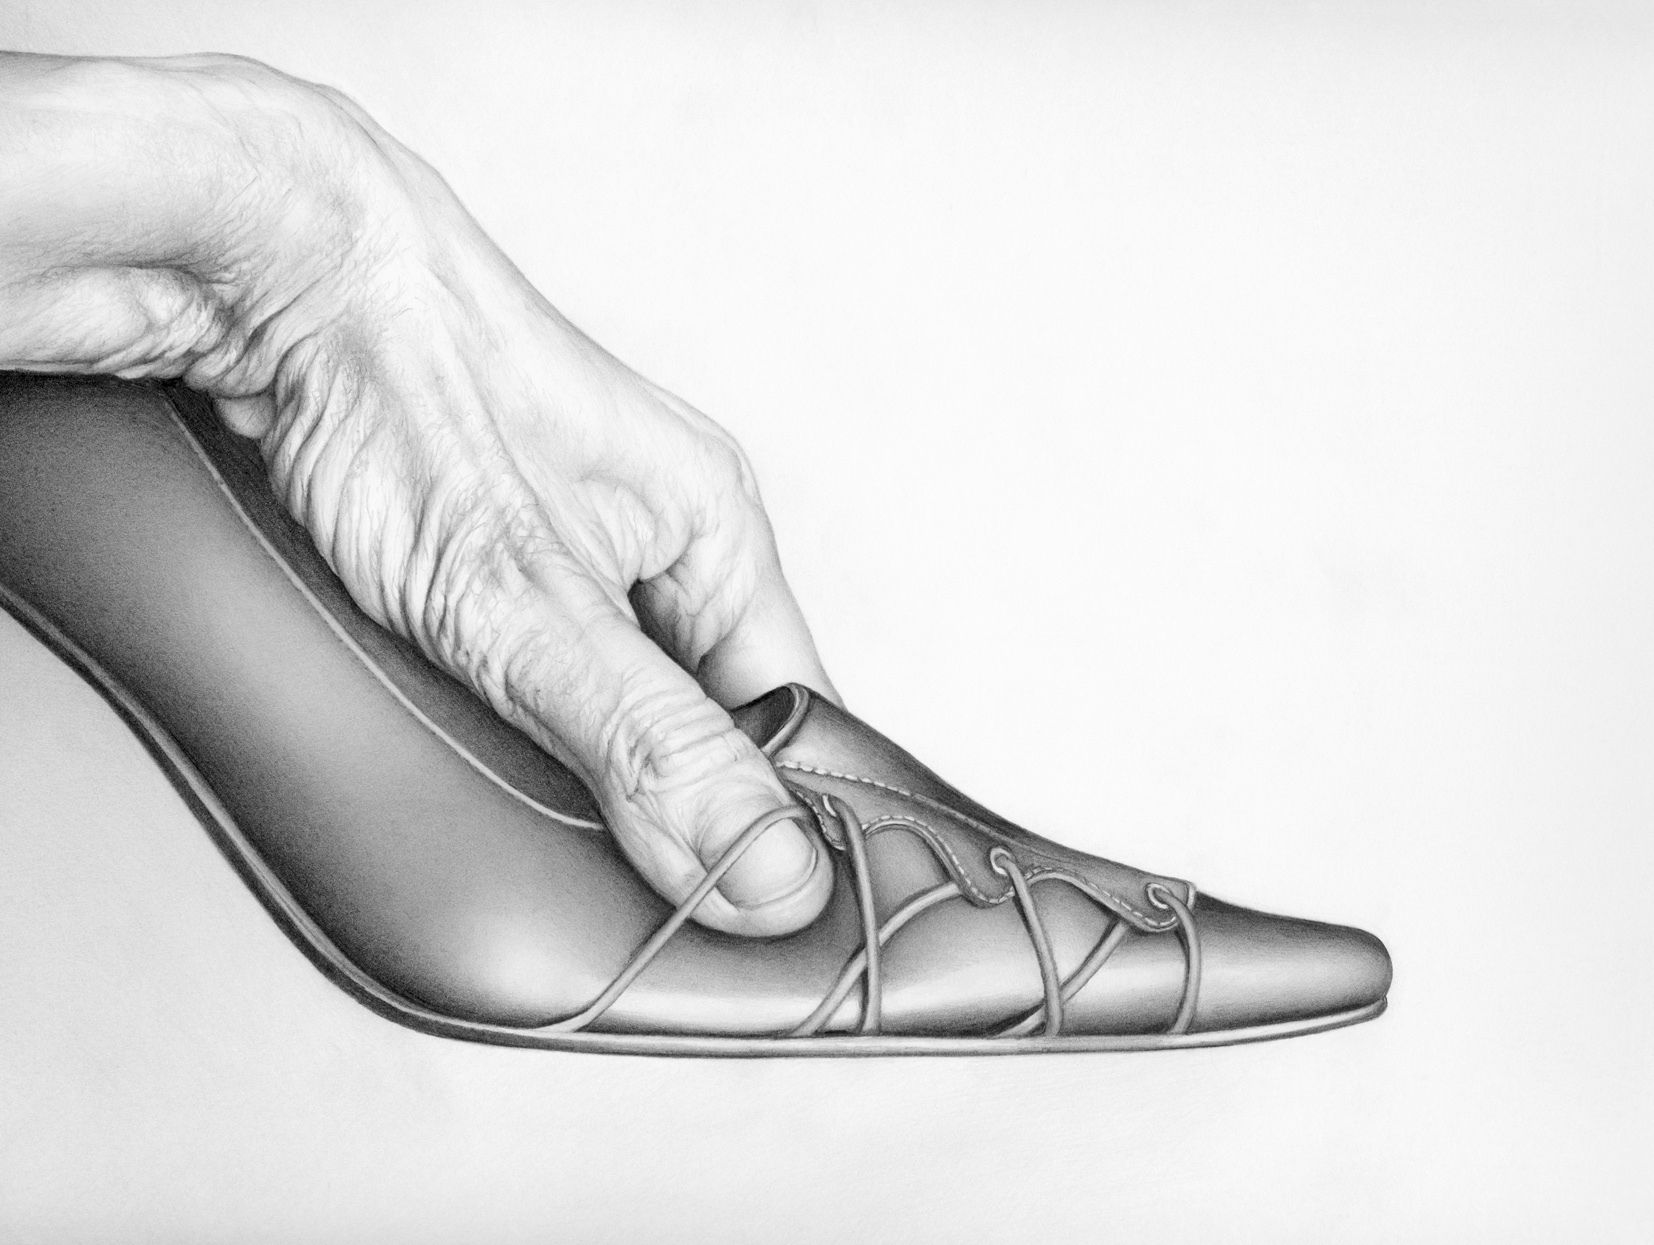 Male hand grasping womans stiletto shoe cath riley debut art